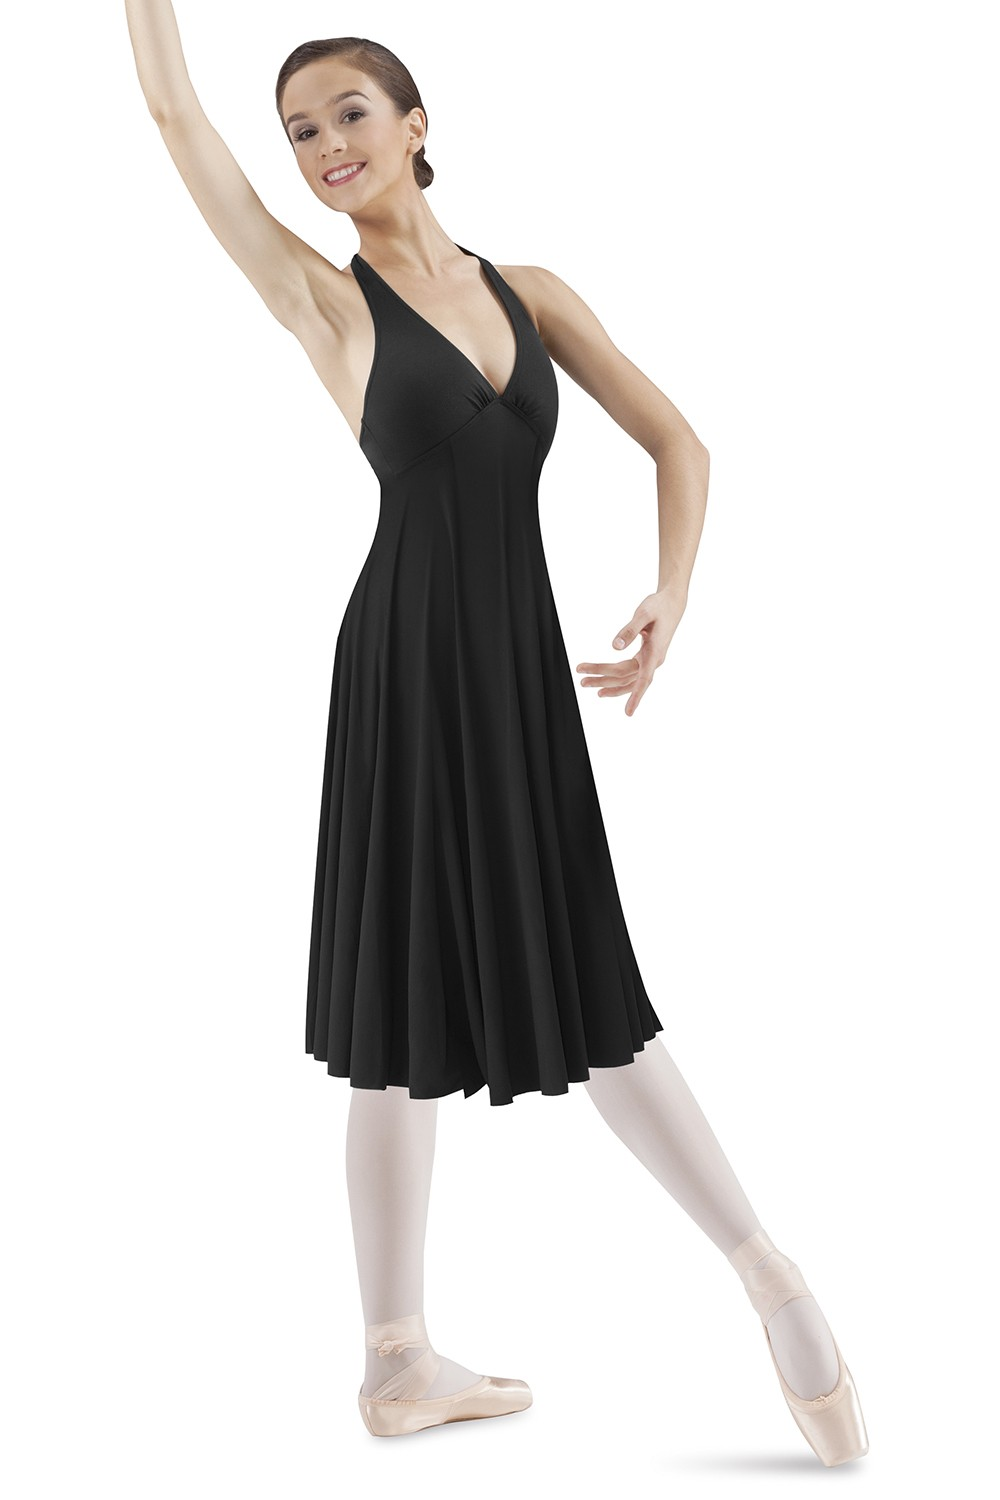 Halter Dress Women's Dance Skirts